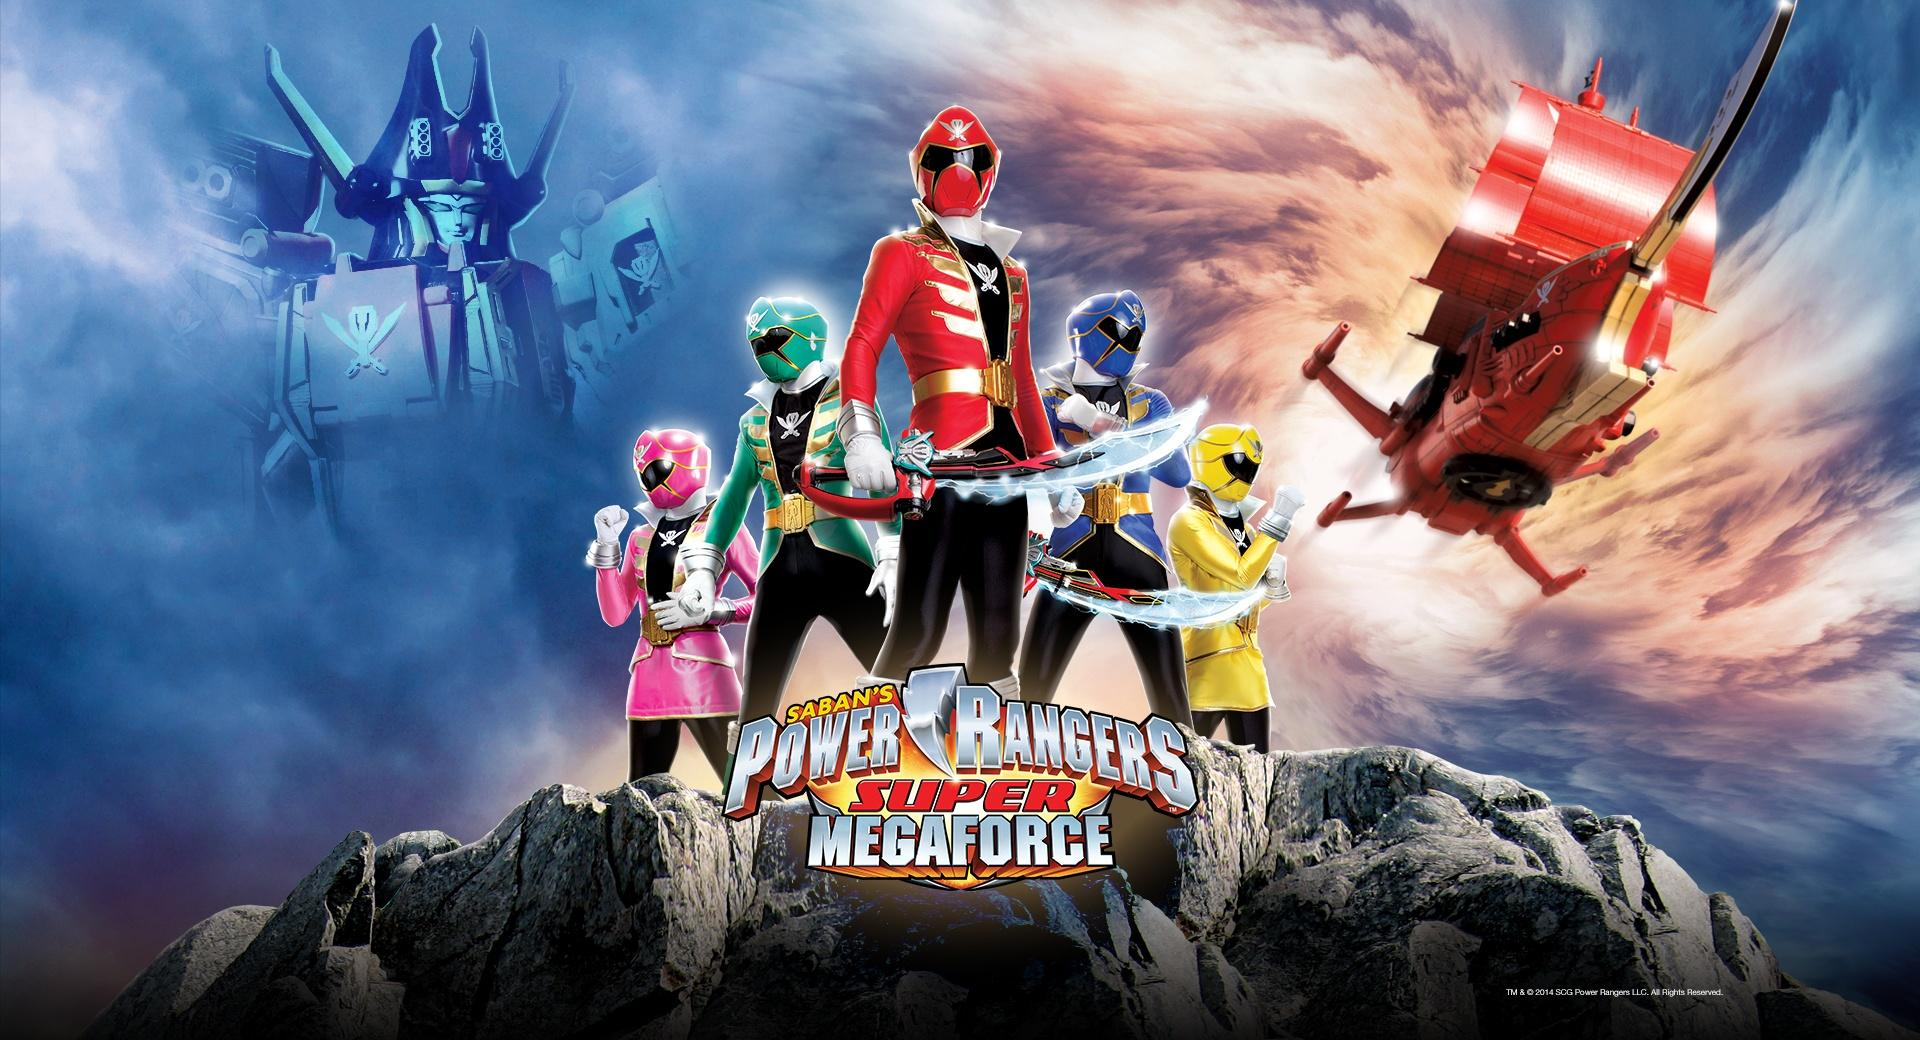 Sabans Power Rangers Super Megaforce wallpapers HD quality